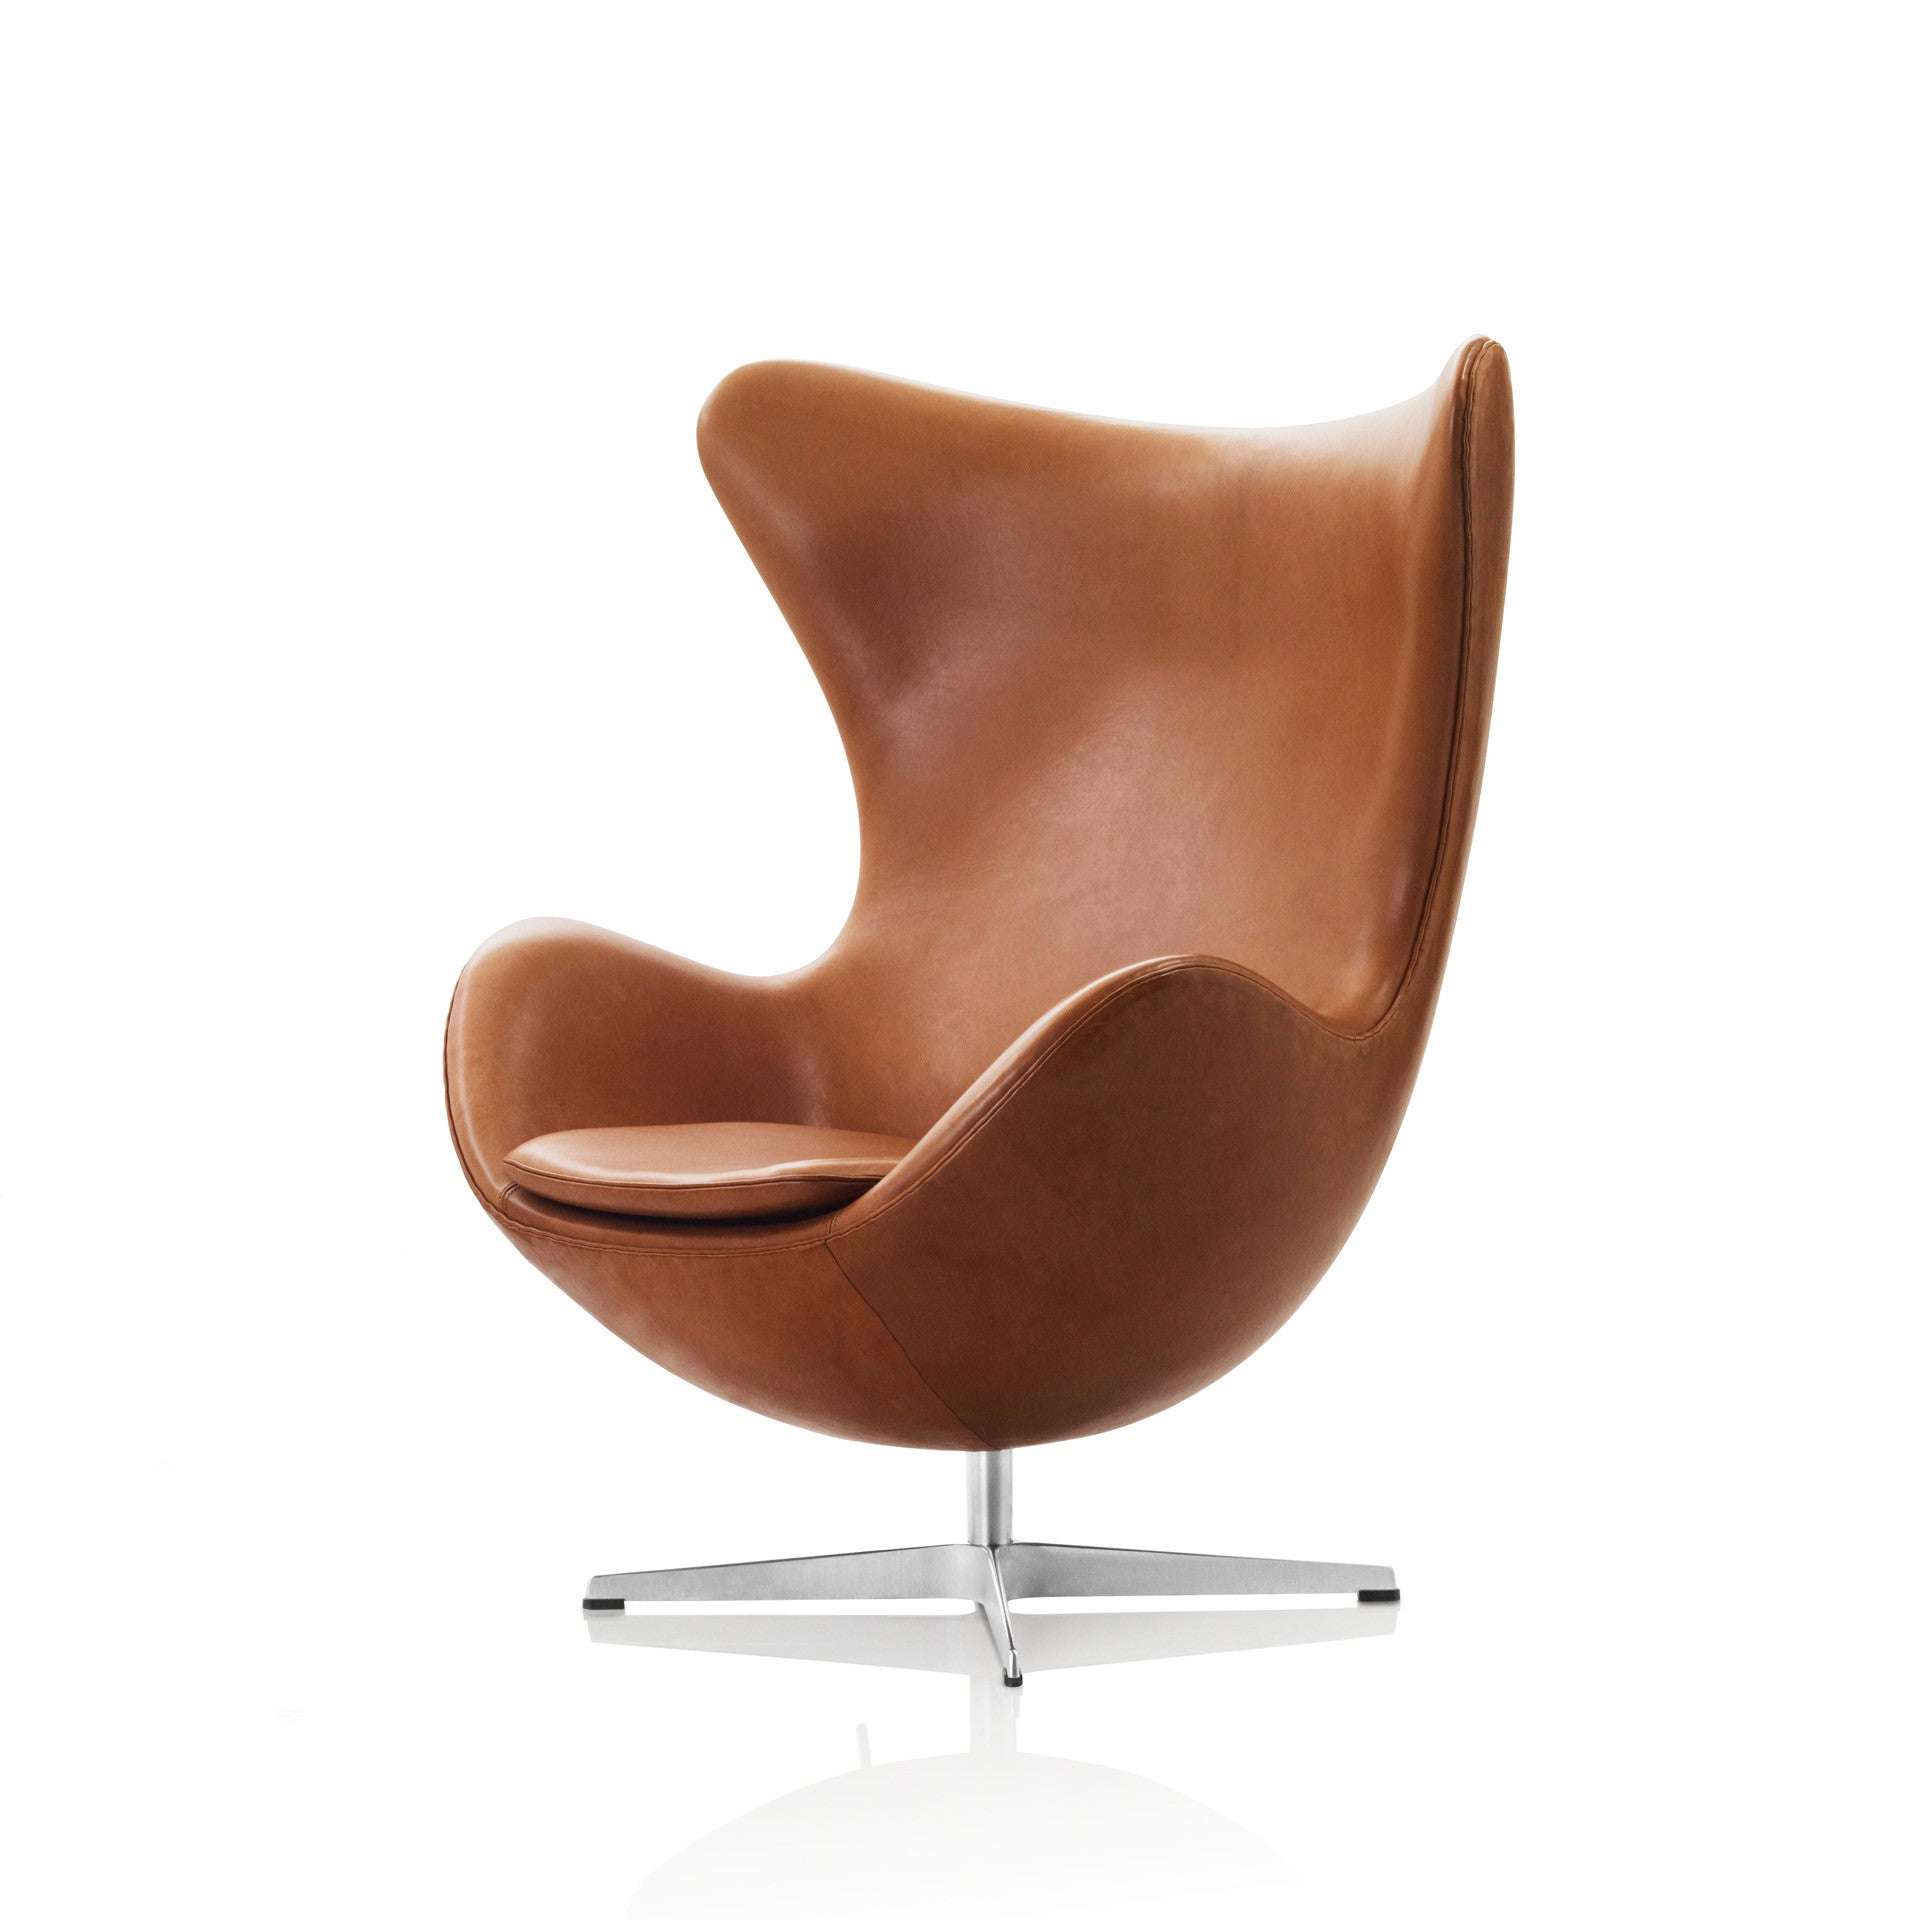 Arne jacobsen egg chair couch potato company for Sessel jacobsen